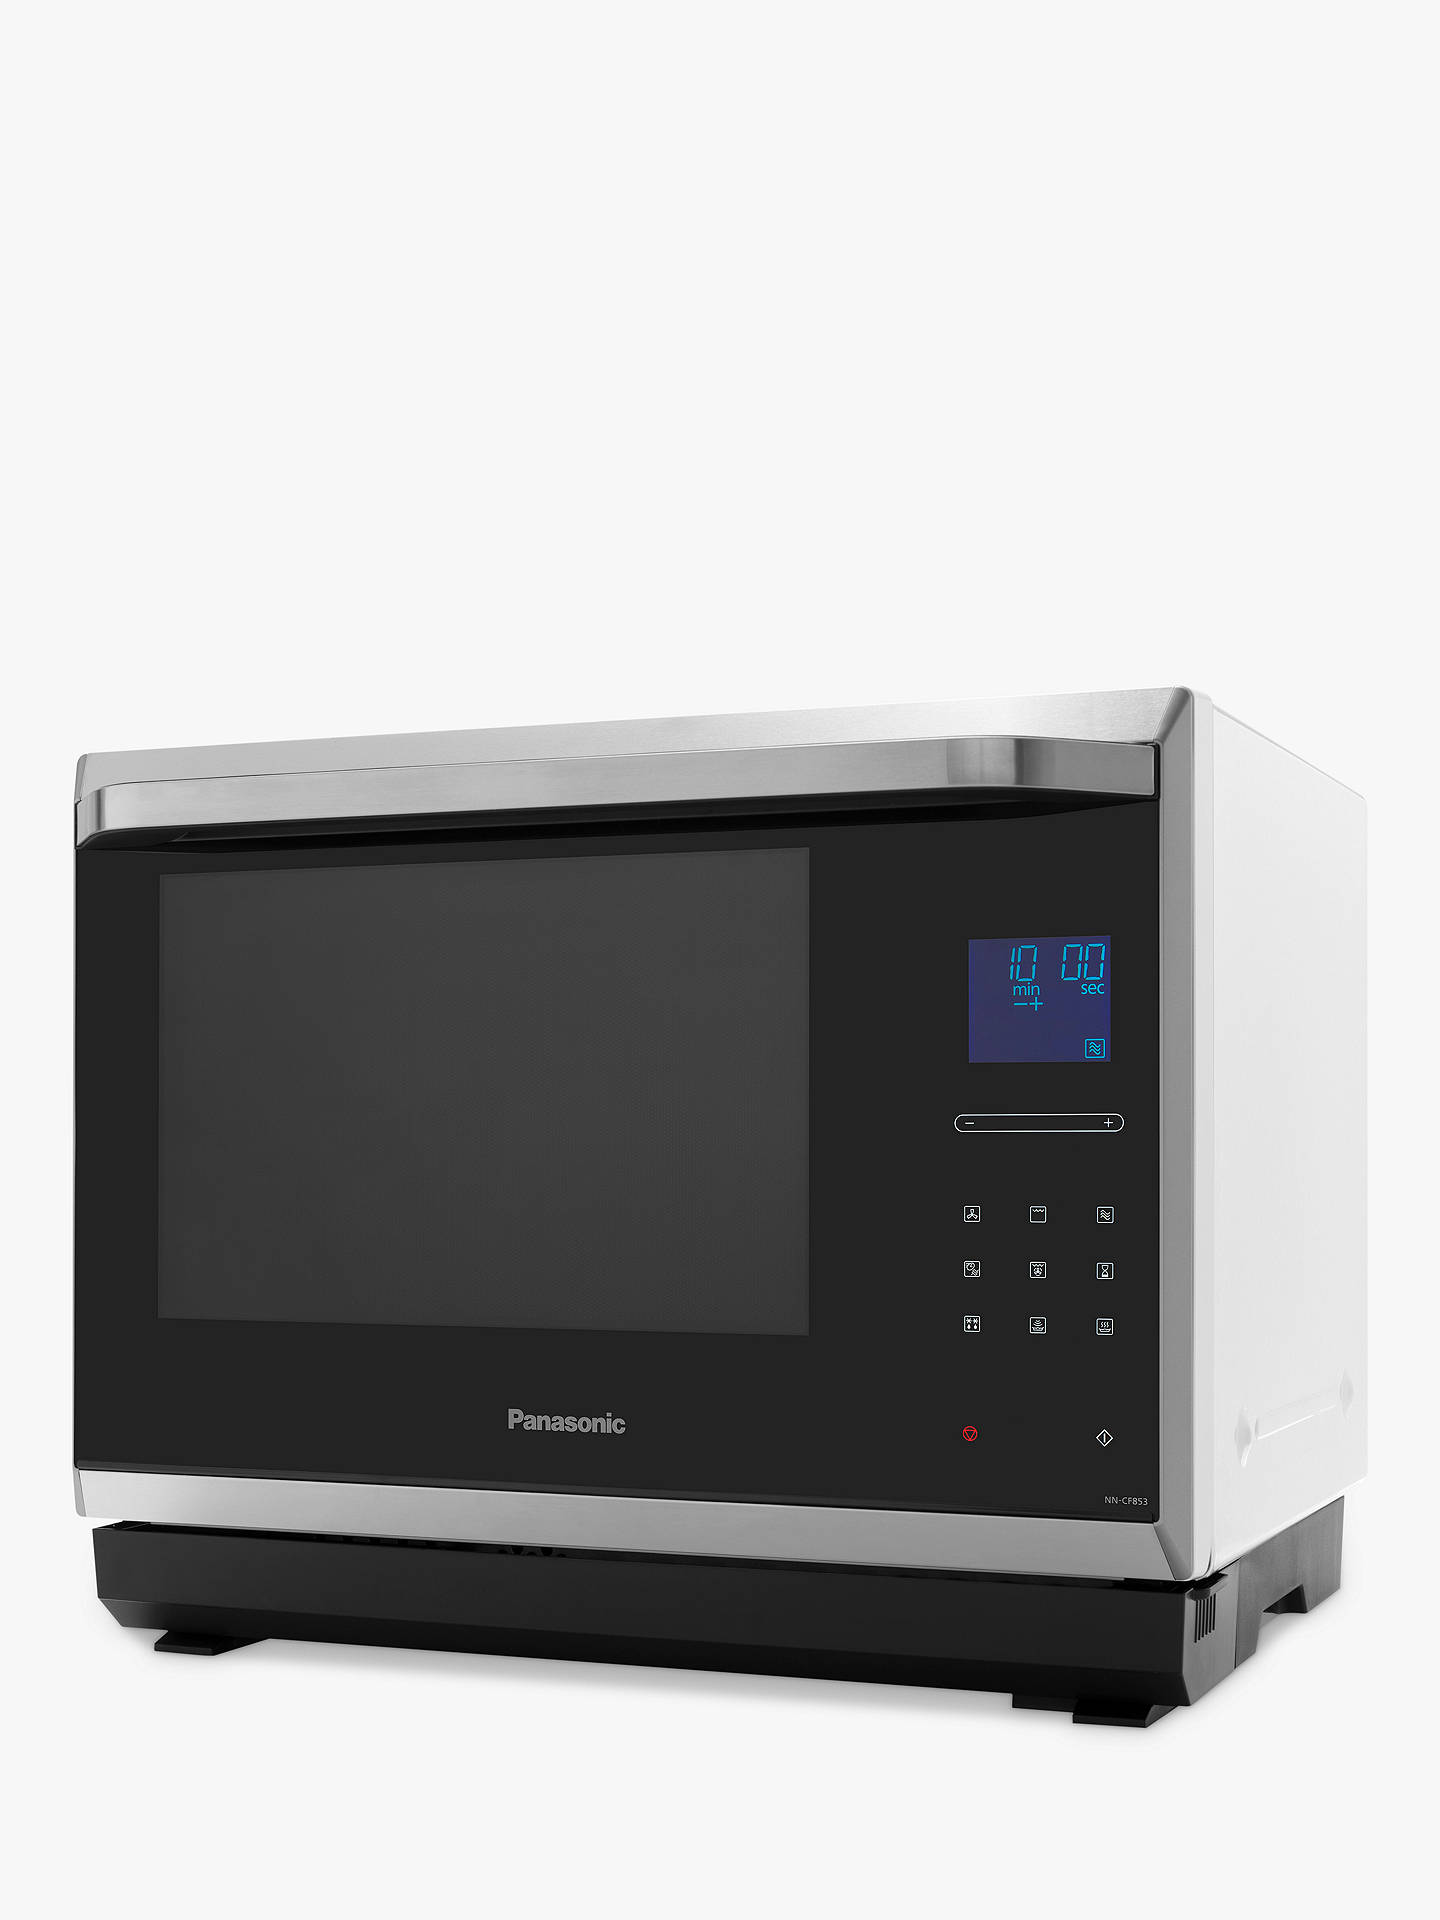 Buy Panasonic NN-CF853WBPQ Combination Microwave Oven, Black/White Online at johnlewis.com